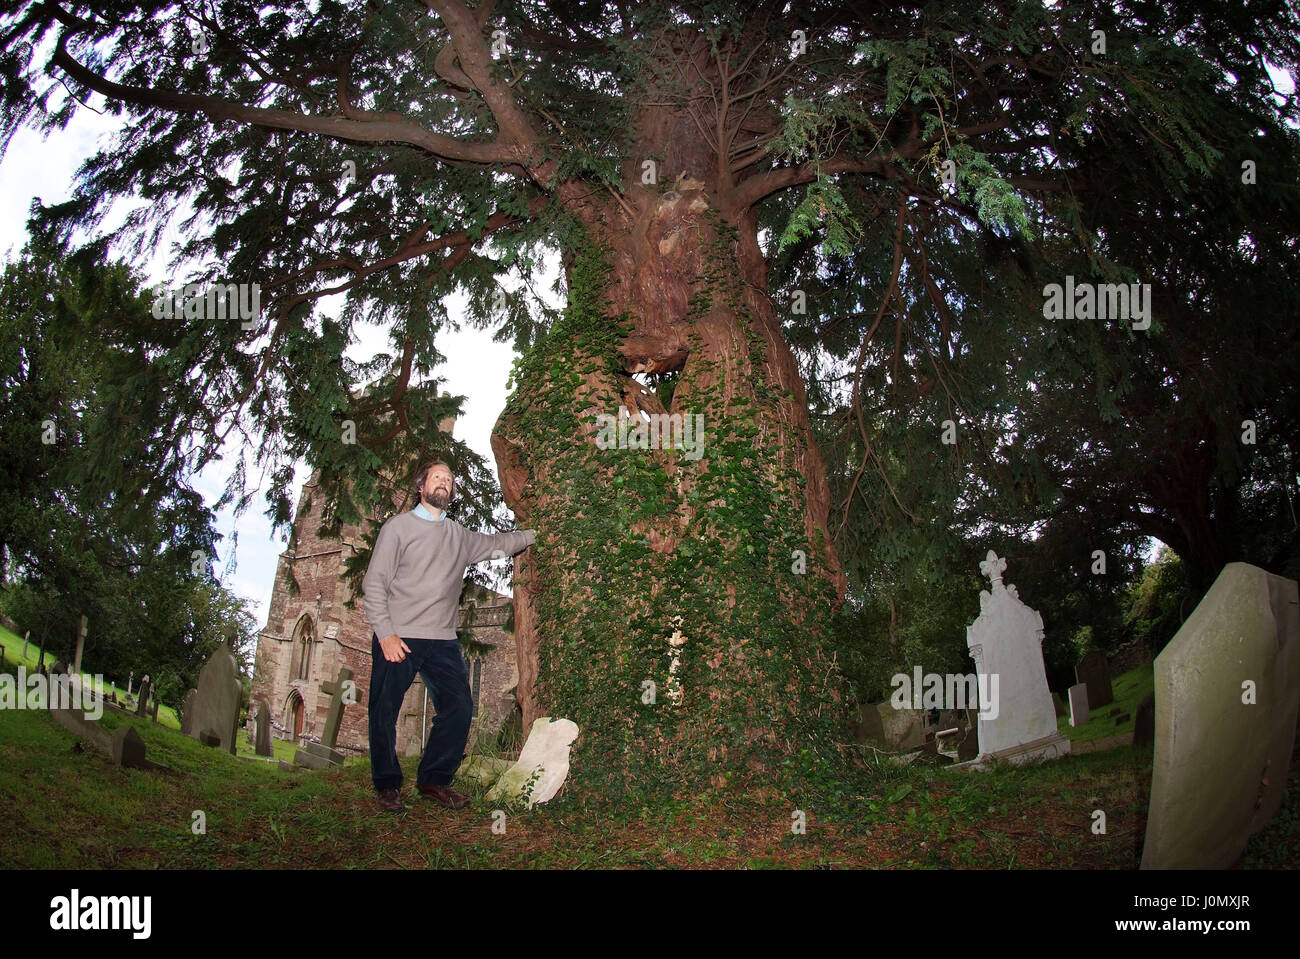 Yew  trees in the churchyard of St.Mary the Virgin churchyard, Portbury, Bristol with yew expert Tim Hills - Stock Image